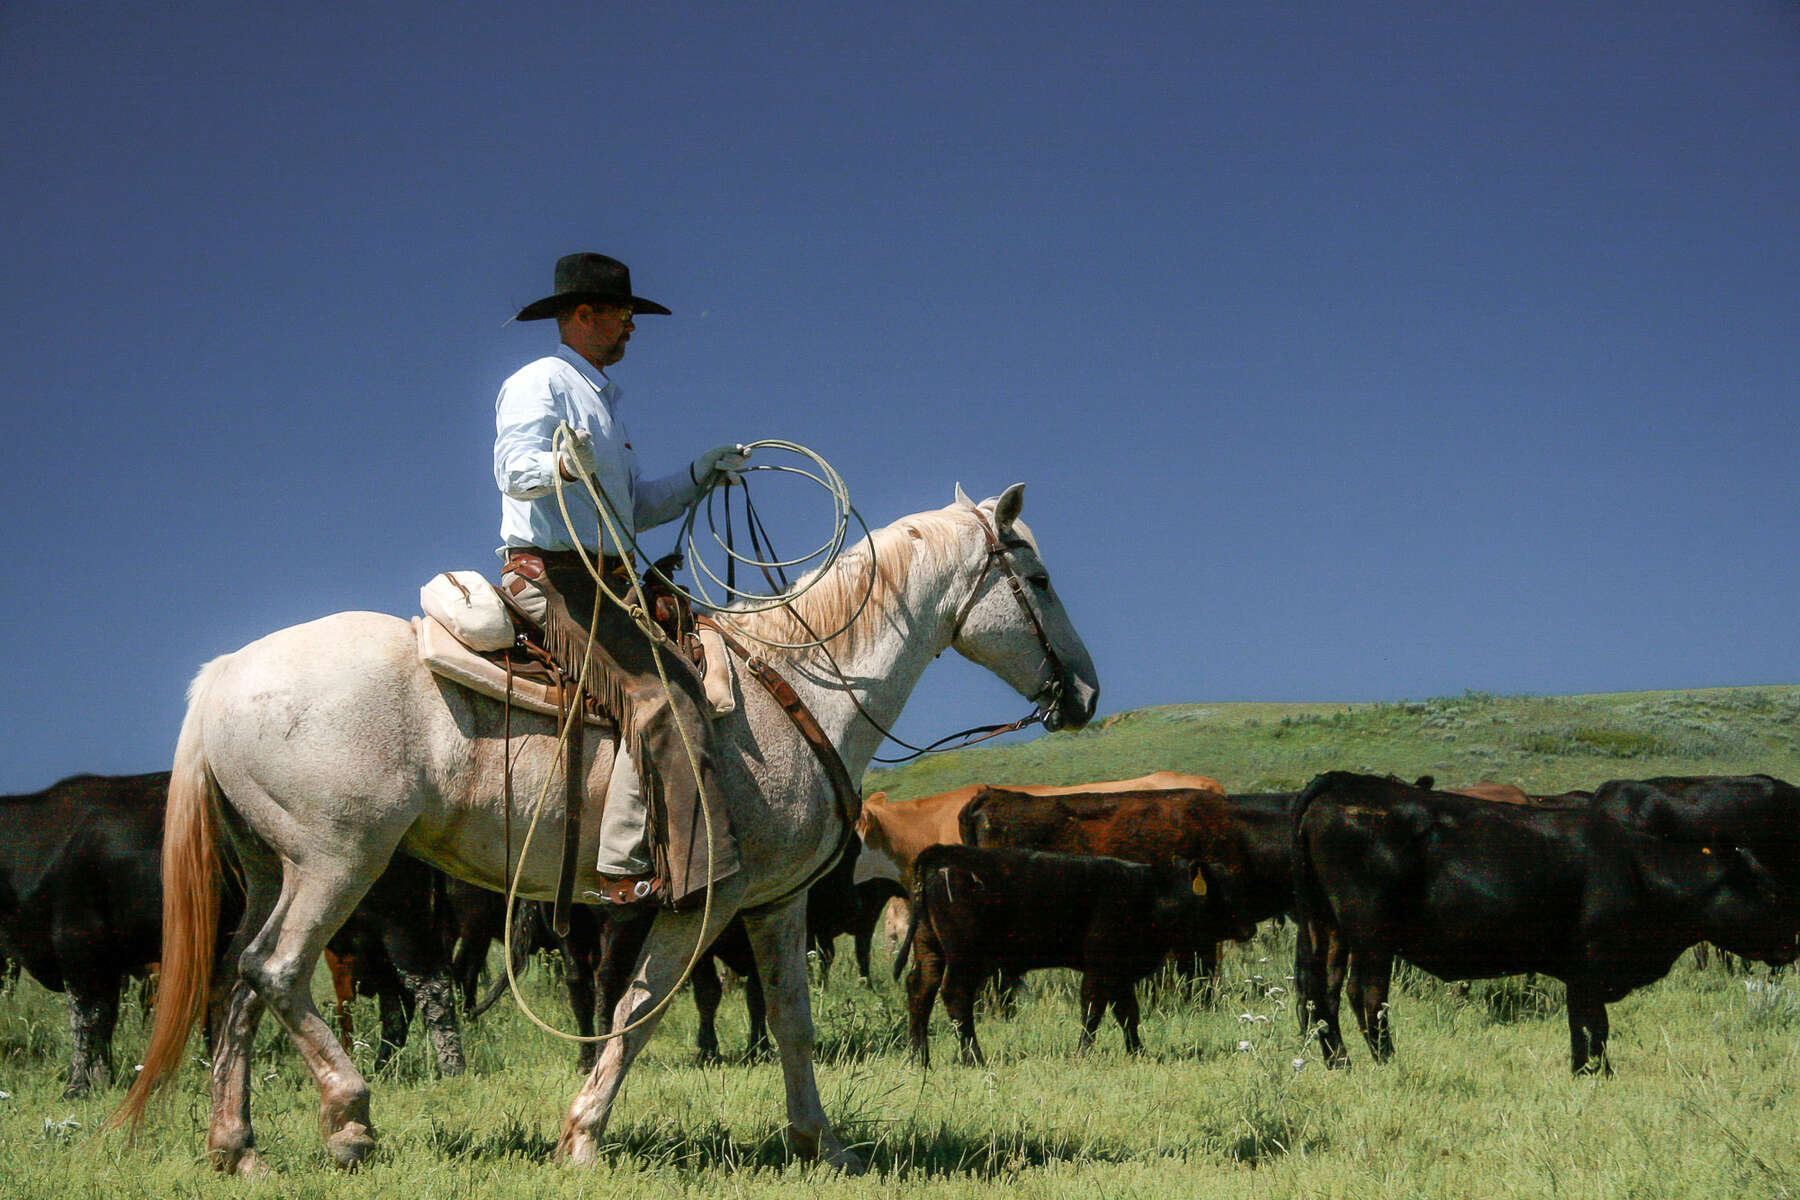 USA Ranch vacation and a wrangler roping cattle